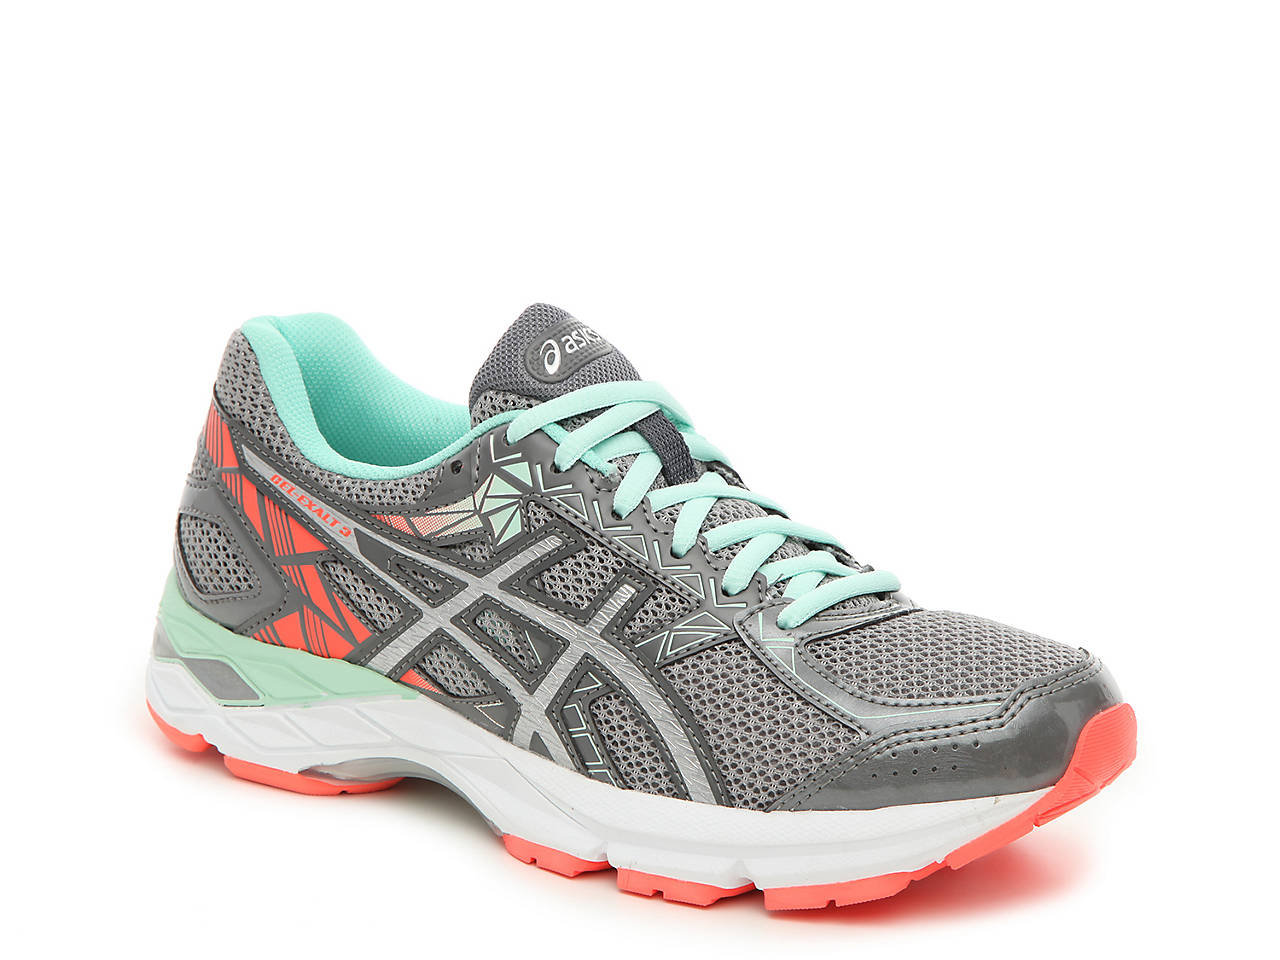 GEL-Exalt 3 Performance Running Shoe - Women's